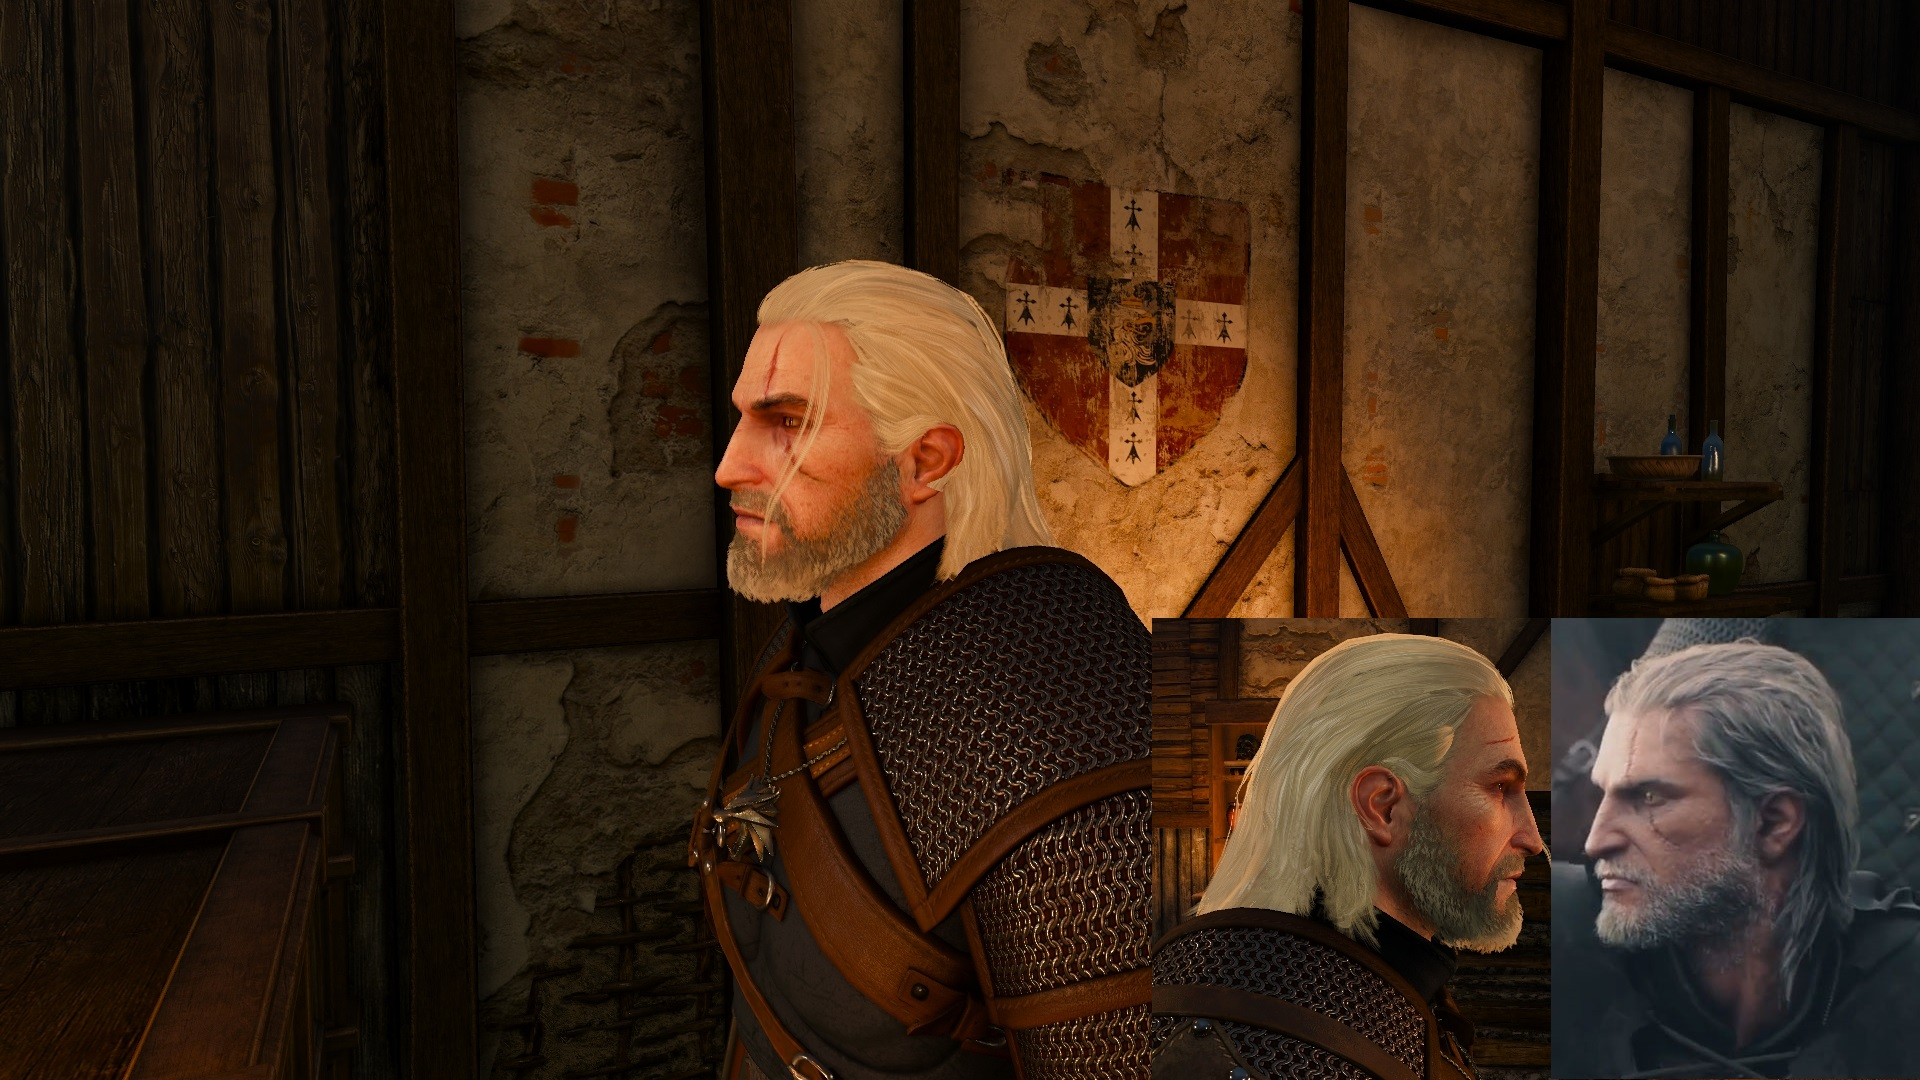 Witcher 3 Hair Styles: Long Tucked Hair Reworked At The Witcher 3 Nexus